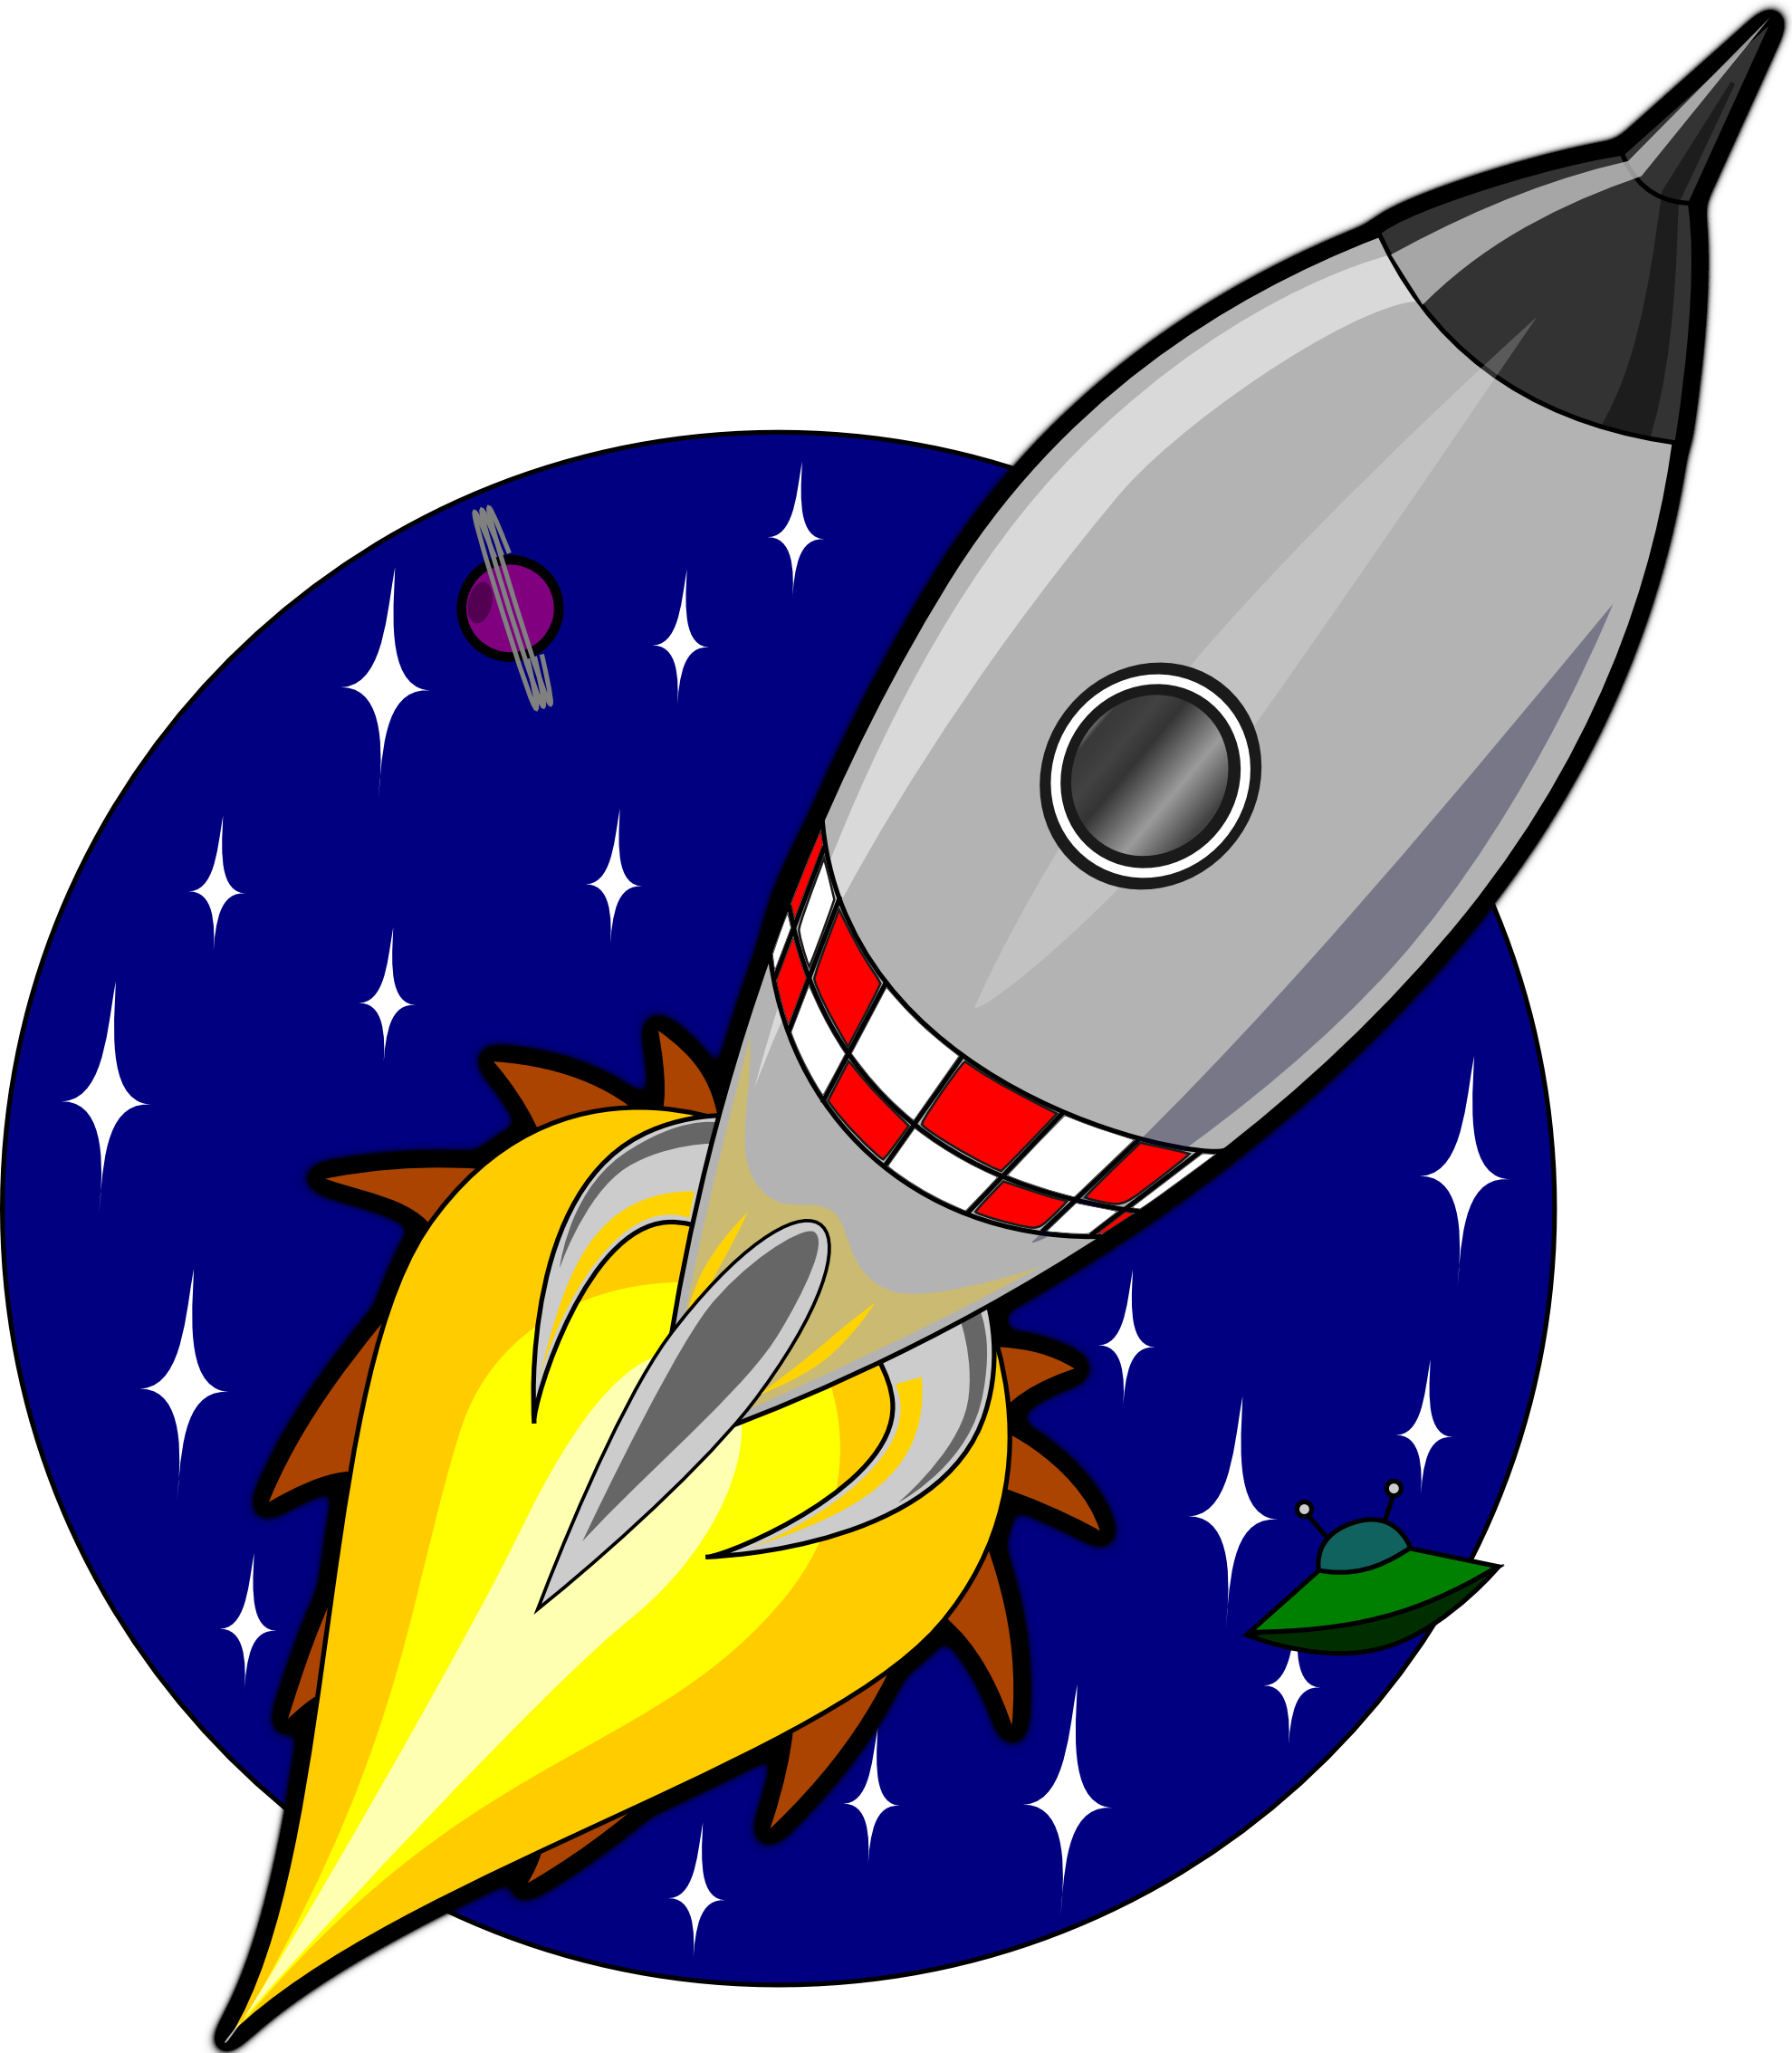 Rocket Clipart Cliparts And .-Rocket clipart cliparts and .-11